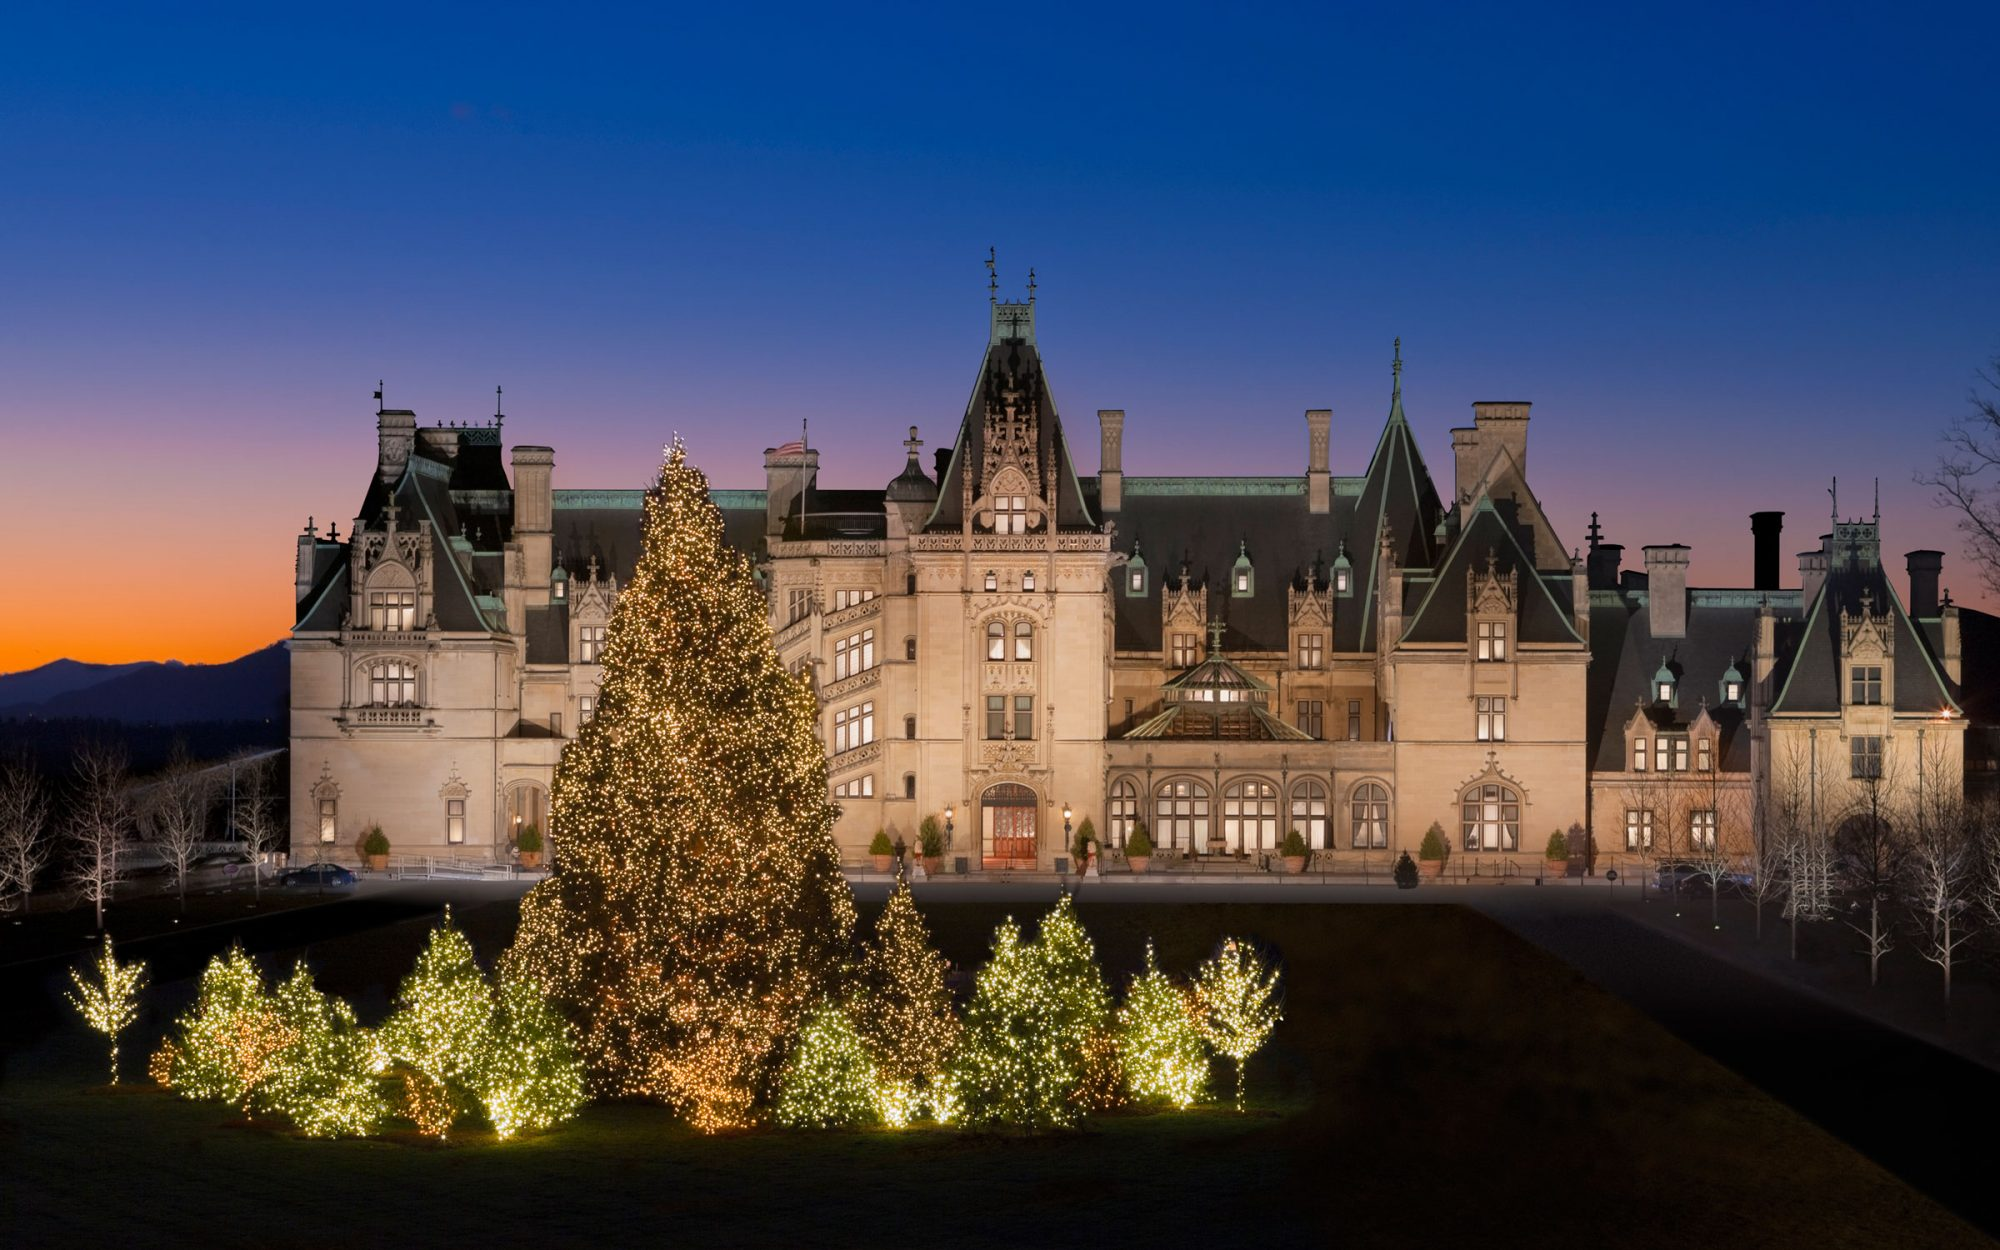 Biltmore Christmas.How To Enjoy The Biltmore Estate At Christmas Travel Leisure